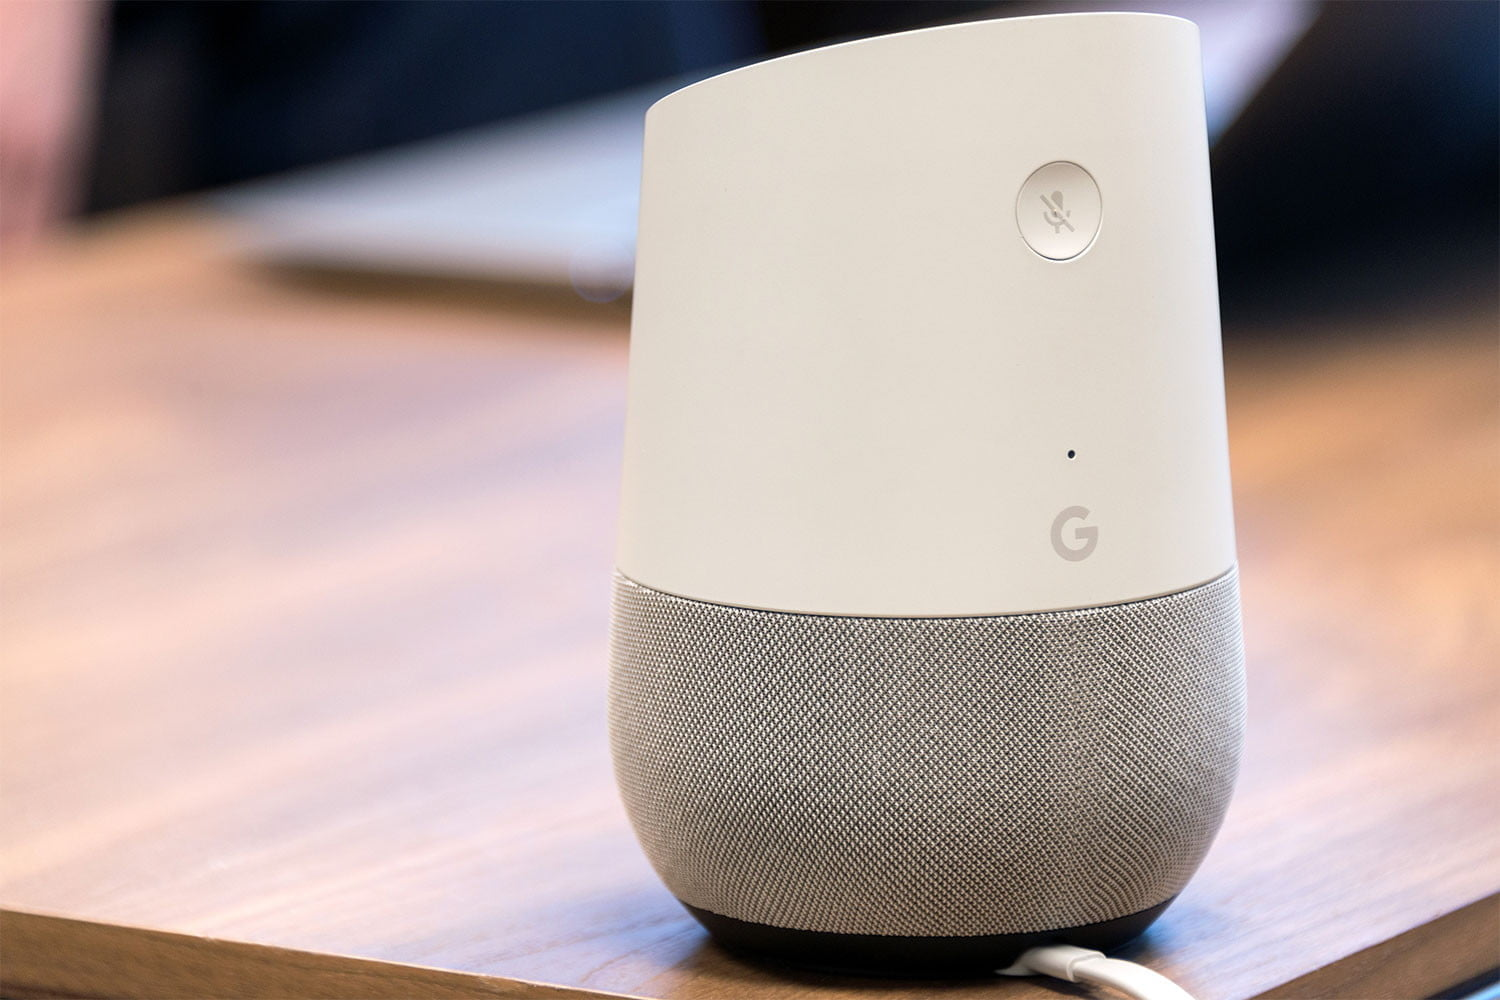 Walmart drops the price of the Google Home smart speaker by 23% for Columbus Day